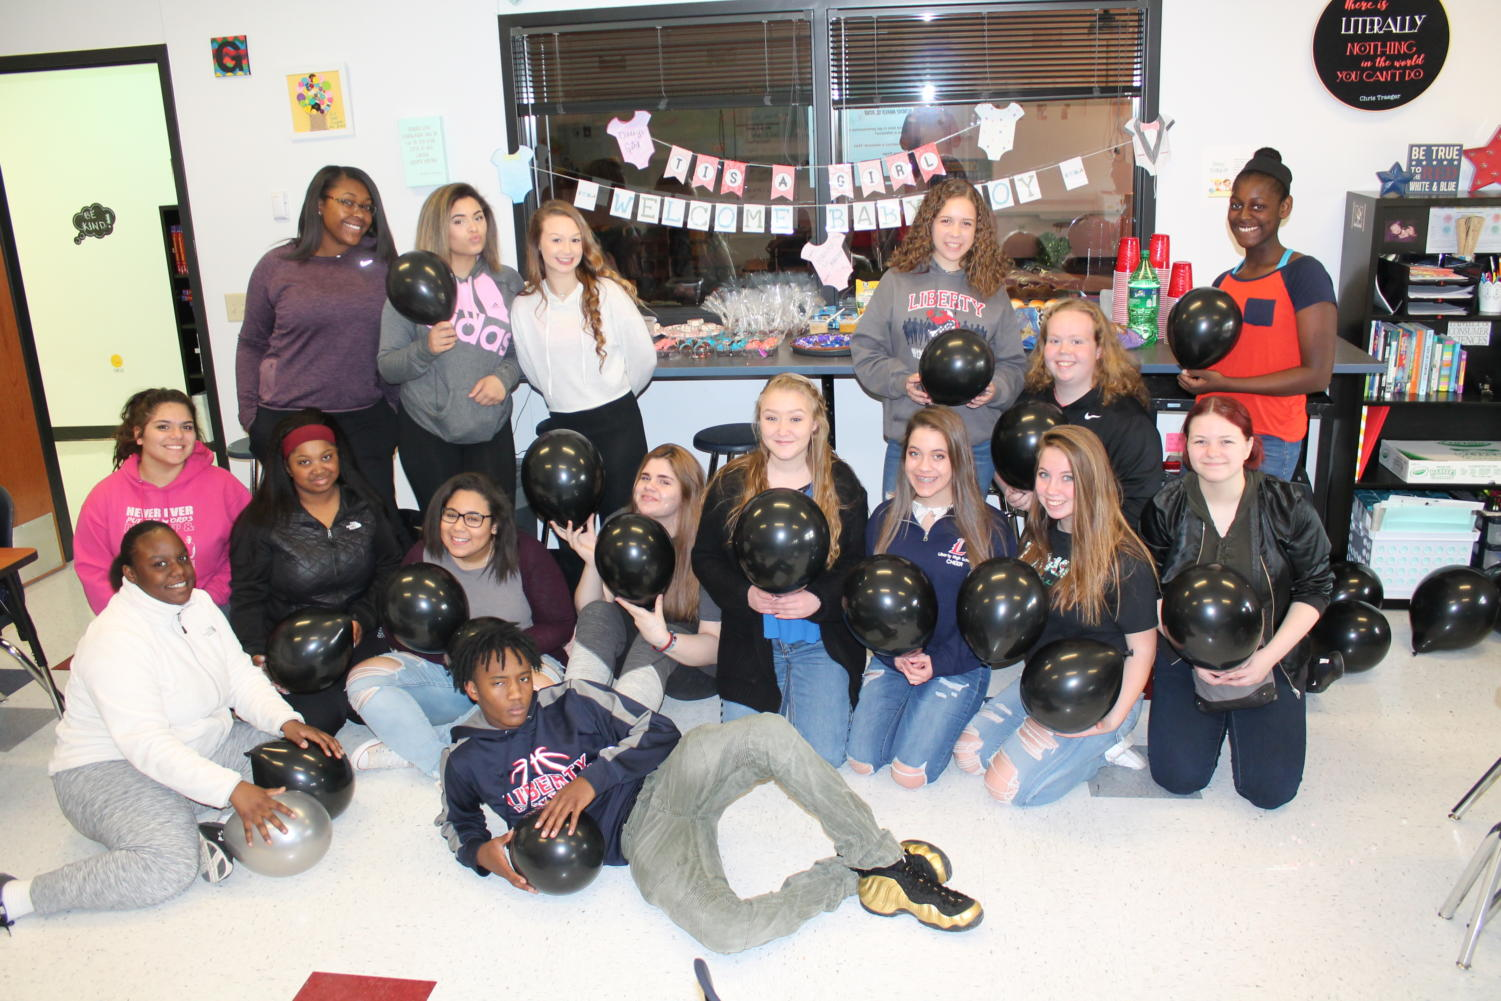 The seventh hour child development I class put on their much-anticipated baby shower.